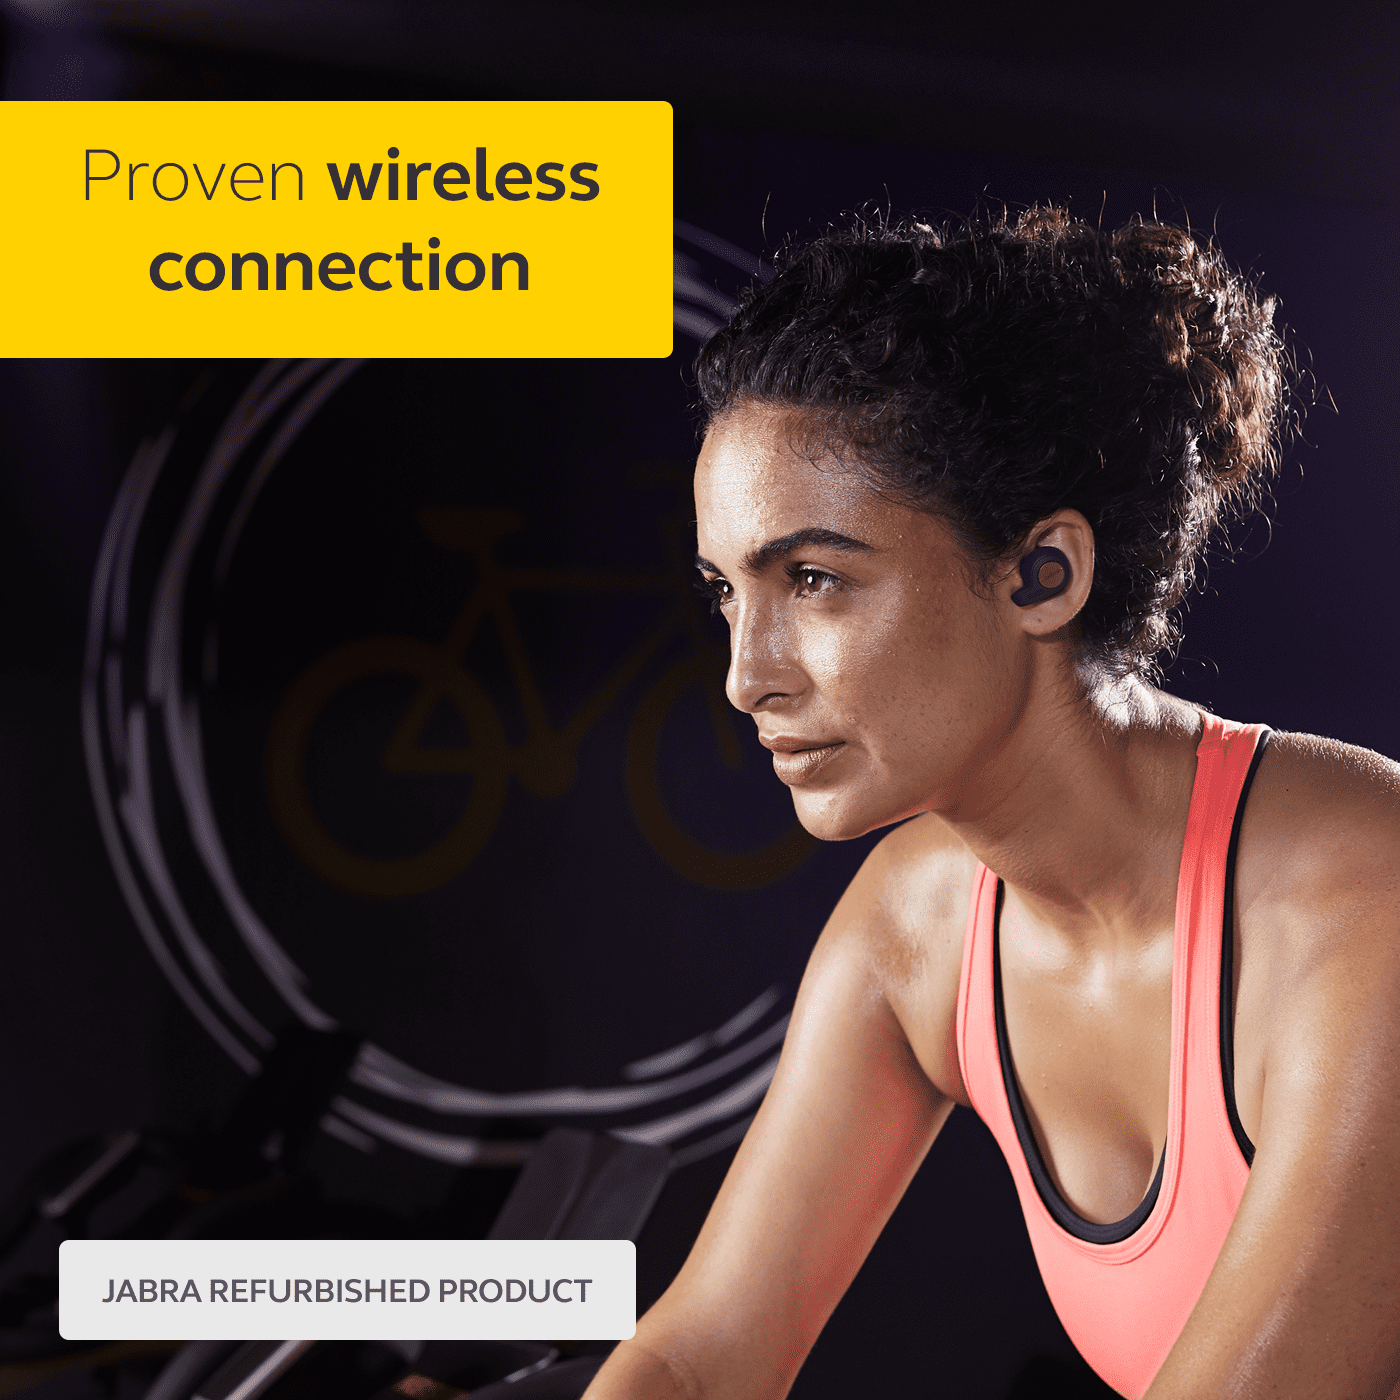 Jabra Elite Active 65t True Wireless Earbuds Manufacturer Refurbished Walmart Com Walmart Com